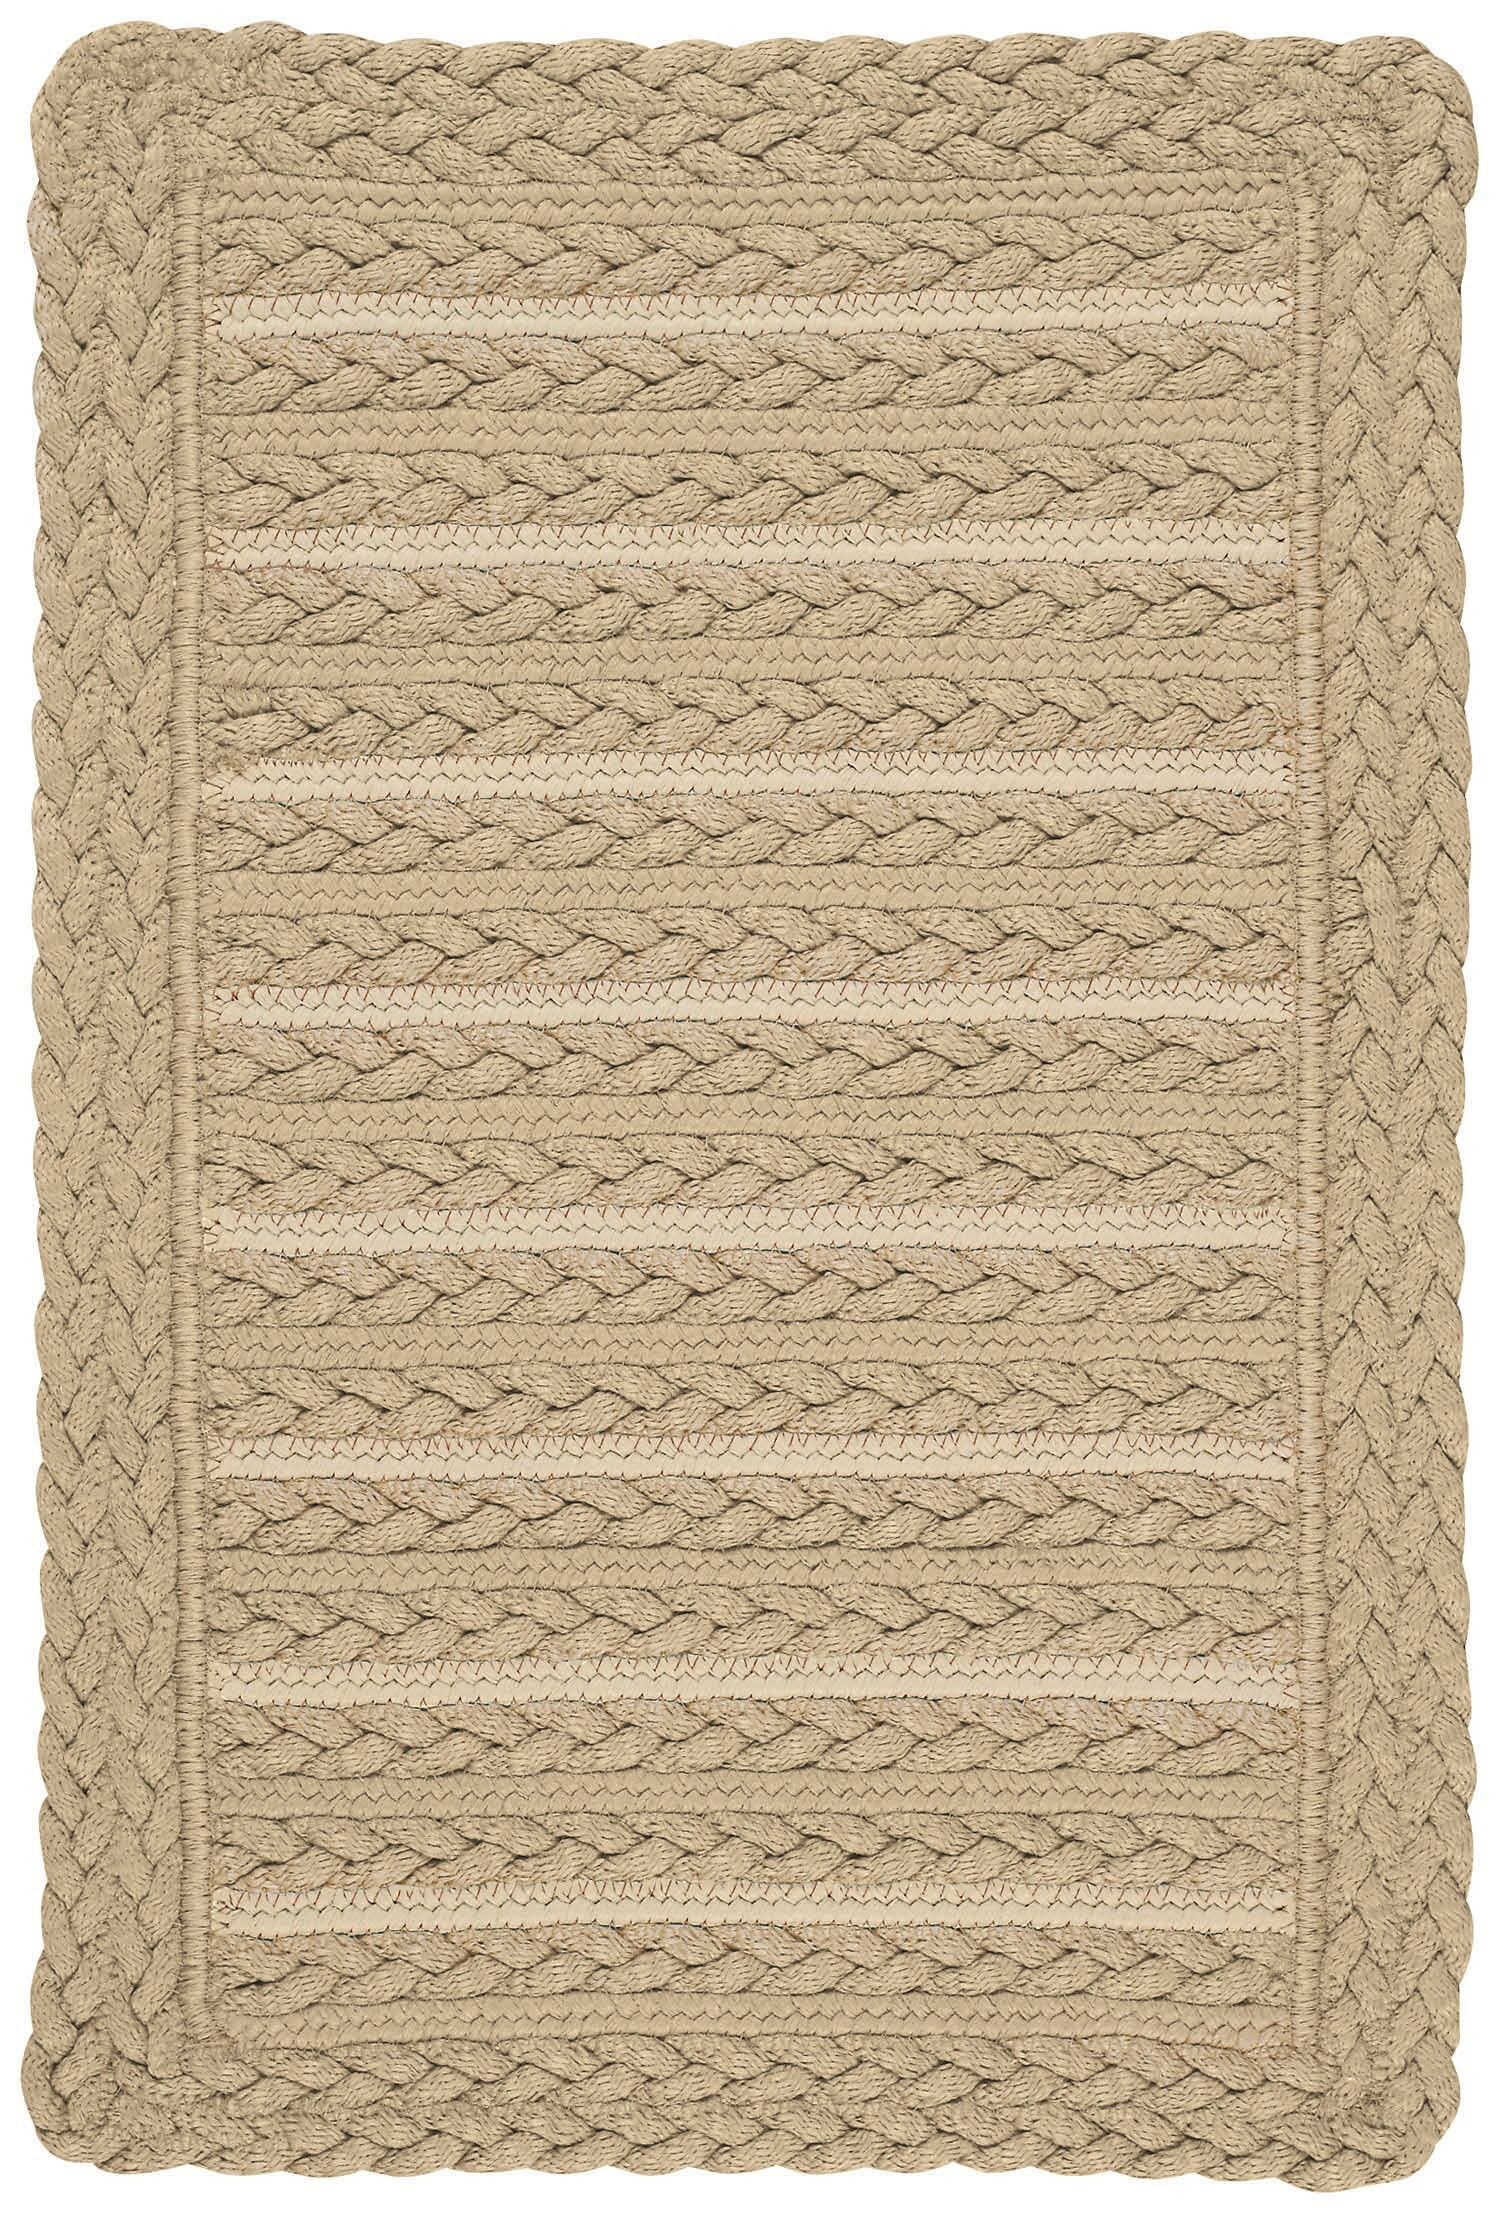 Lyndon Beige Indoor/Outdoor Area Rug Rug Size: Cross Sewn Square 5'6